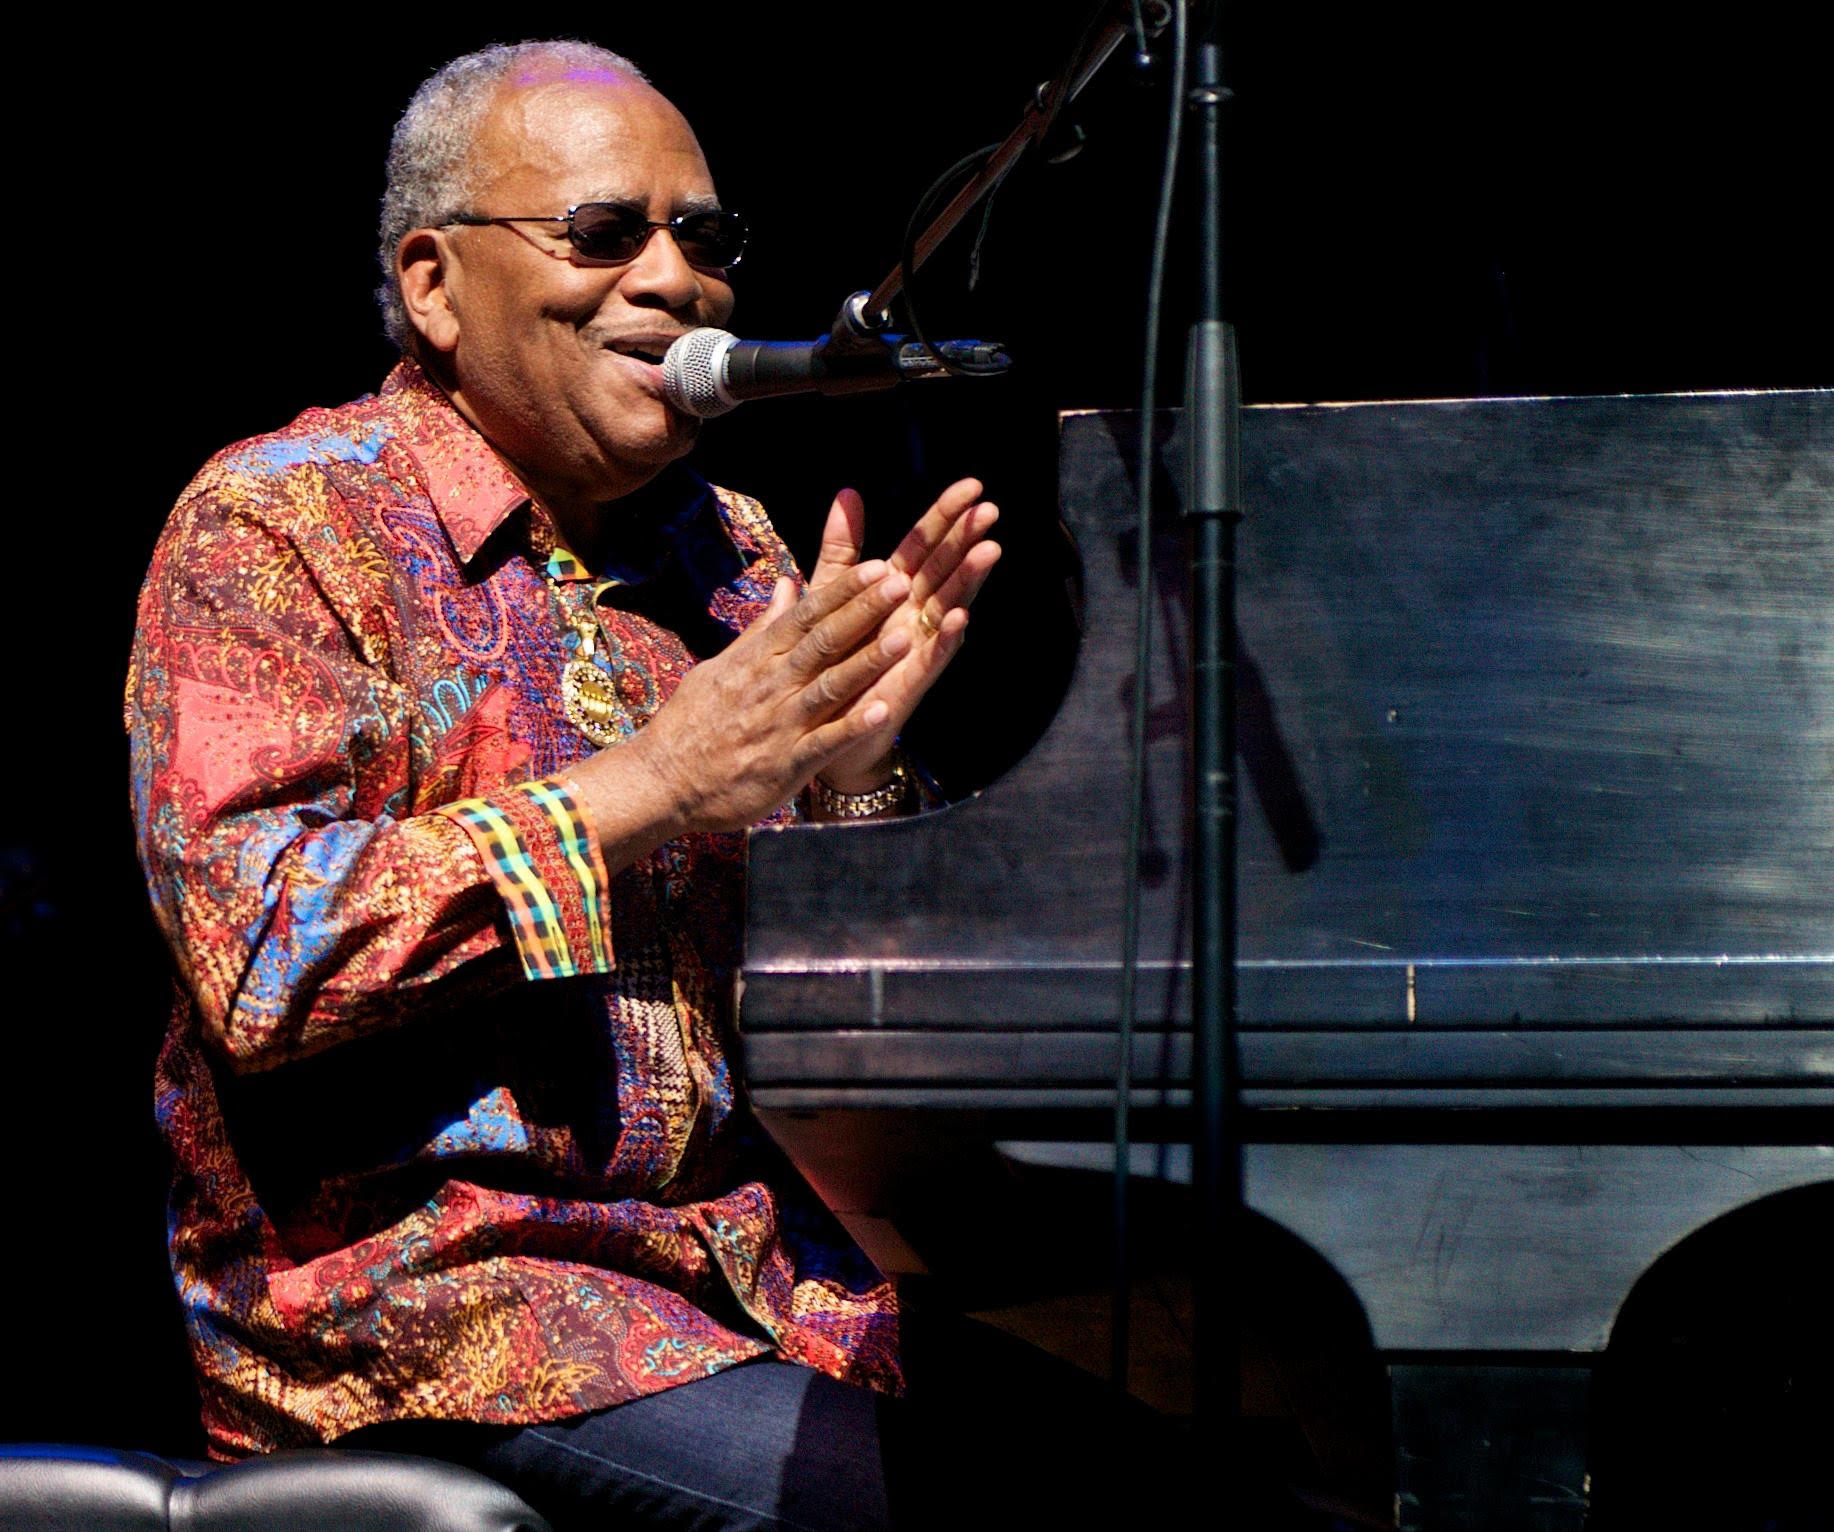 """Jazz pianist and Richmond native  Lonnie Liston Smith  spent much of the 1960s and early 1970s working with  Art Blakey  and  the Jazz Messengers , saxophonist  Pharoah Sanders  and the iconic  Miles Davis  before forming his own group, the Cosmic Echoes, in 1973. With his albums """"Astral Traveling,"""" """"Expansions"""" and """"Visions of a New World,"""" Smith has helped pioneer the Spiritual Jazz and Fusion genres. In the 1990s, he was hailed as one of the godfathers of the Acid Jazz movement, and he became a household name in Hip Hop when he collaborated with  Gang Starr 's Guru on his famed Jazzmatazz project. To this day, Smith's music are considered the gold standard of 1970s jazz and his songs cannot only be heard in countless Hip Hop hits in form of samples, but also in video games like """"Grand Theft Auto."""""""